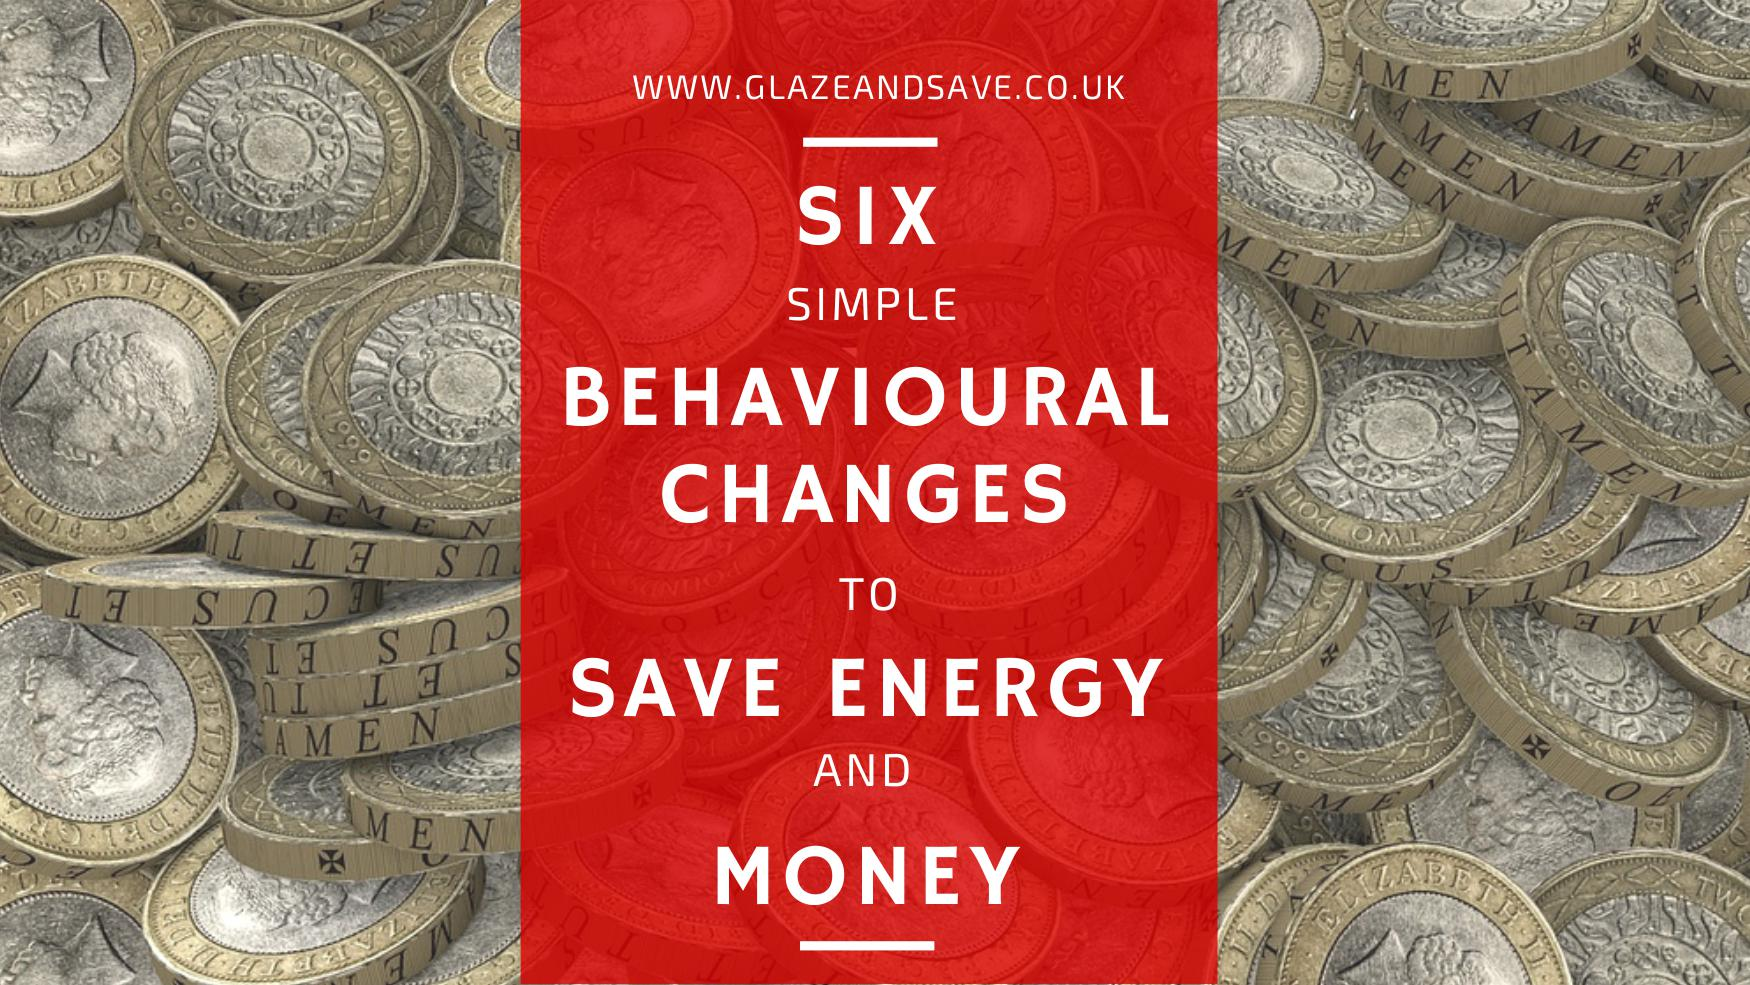 Six simple behavioural changes to save money and energy by Glaze & Save bespoke magnetic secondary glazing and draught proofing based in Perth, Scotland. Save money, save energy and effective draught proof and noise proof your home without the need for planning permission.